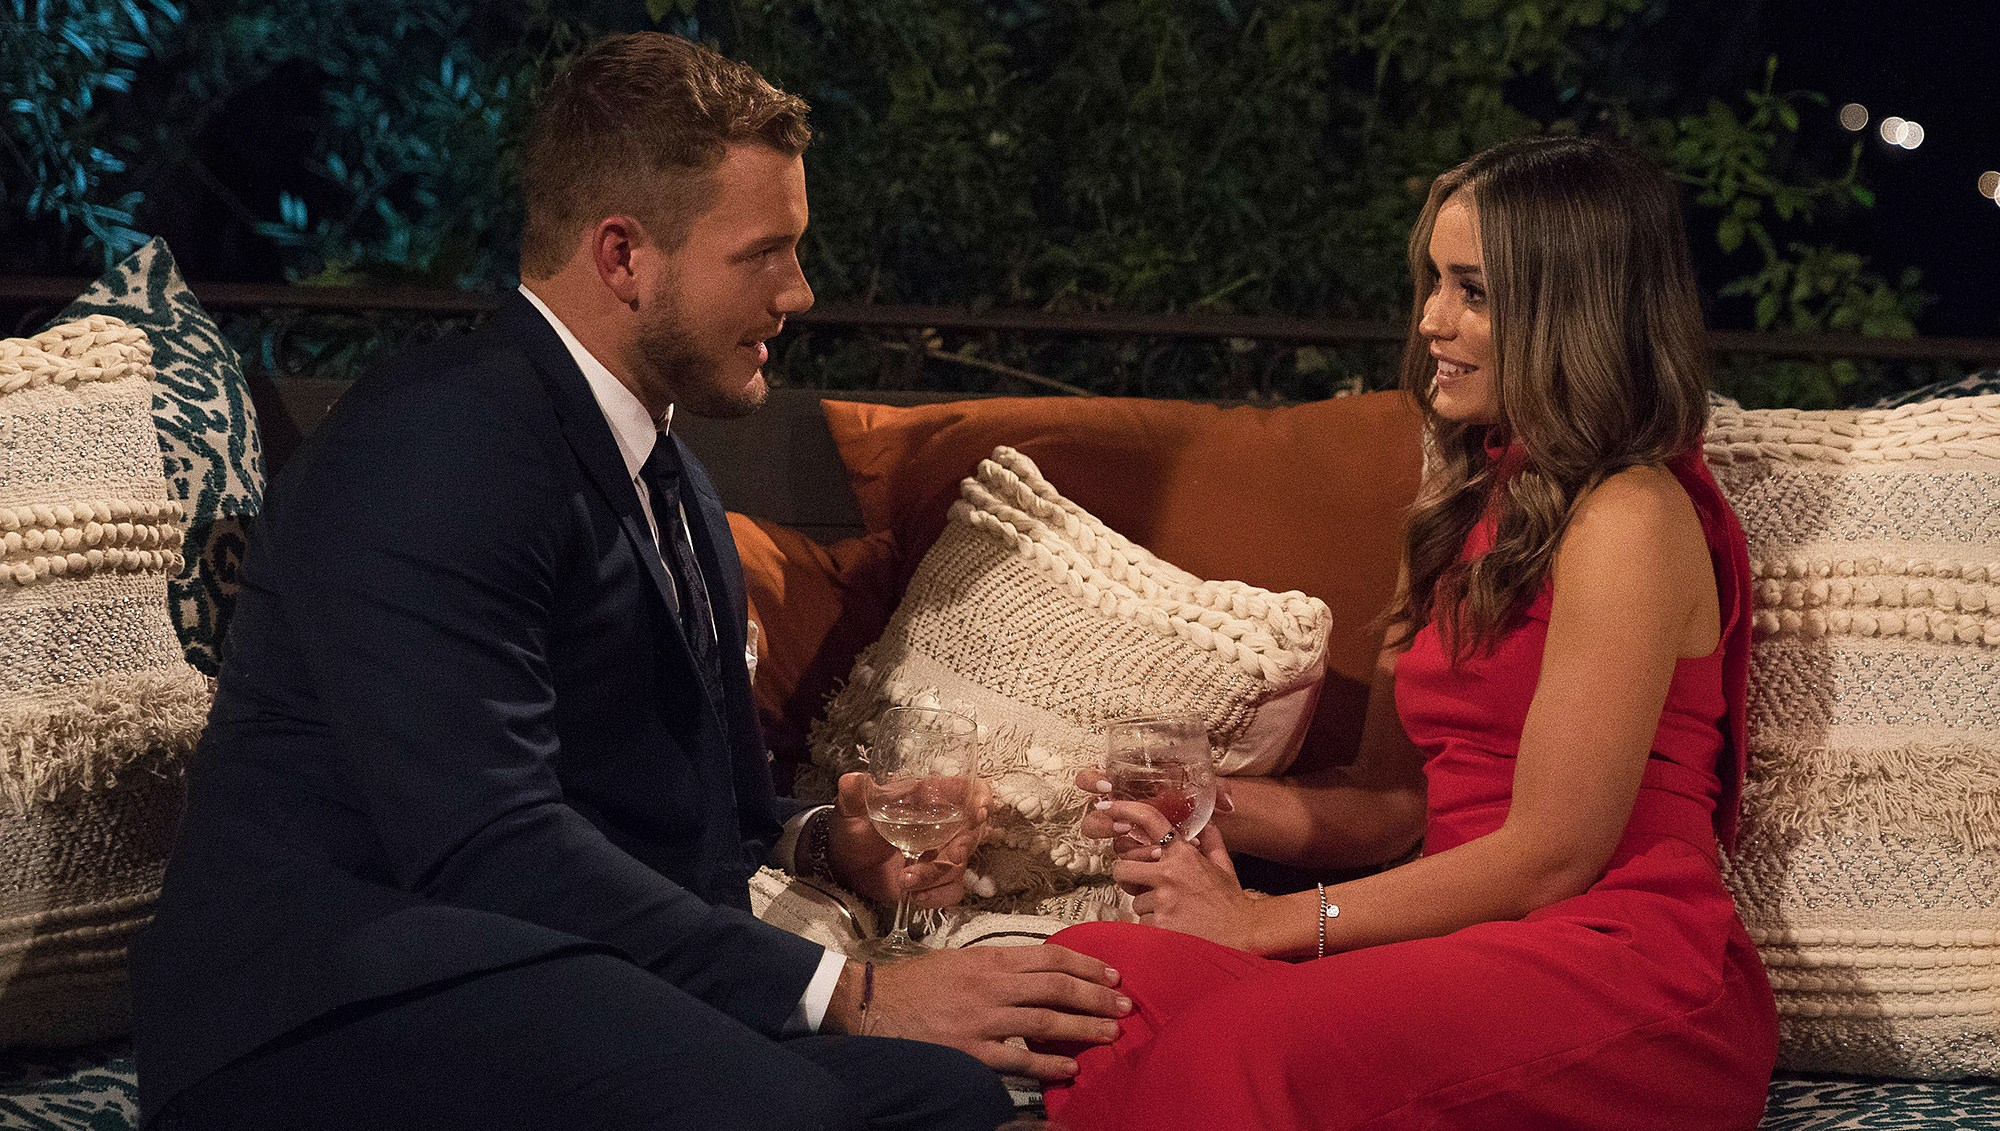 'The Bachelor' Recap: Colton Proves He's Not Messing Around, Cuts Caitlin Early